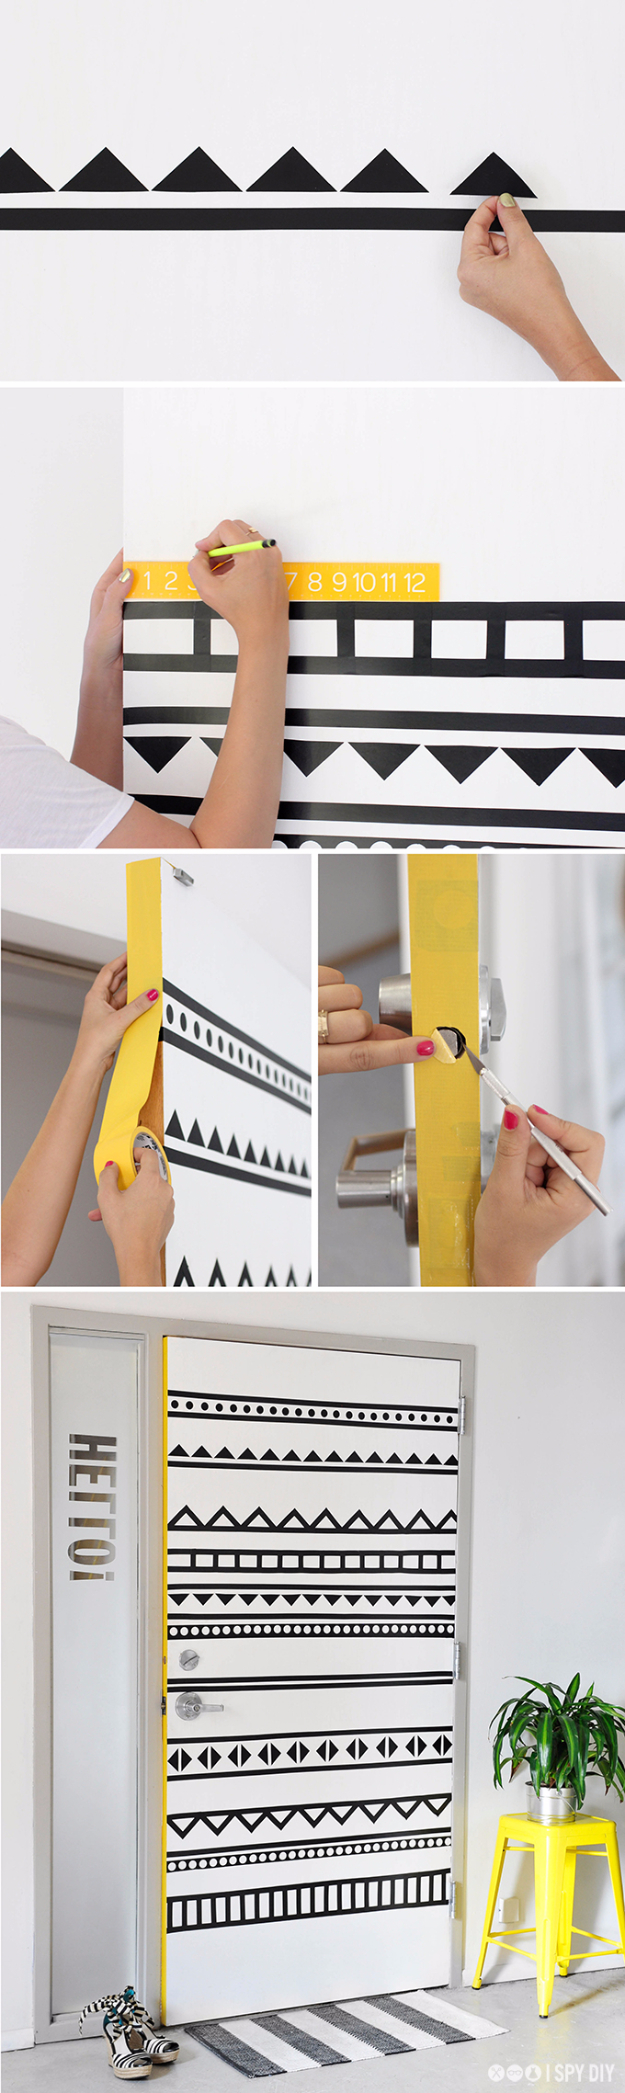 DIY Projects for Teenagers - DIY Graphic Door - Cool Teen Crafts Ideas for Bedroom Decor, Gifts, Clothes and Fun Room Organization. Summer and Awesome School Stuff